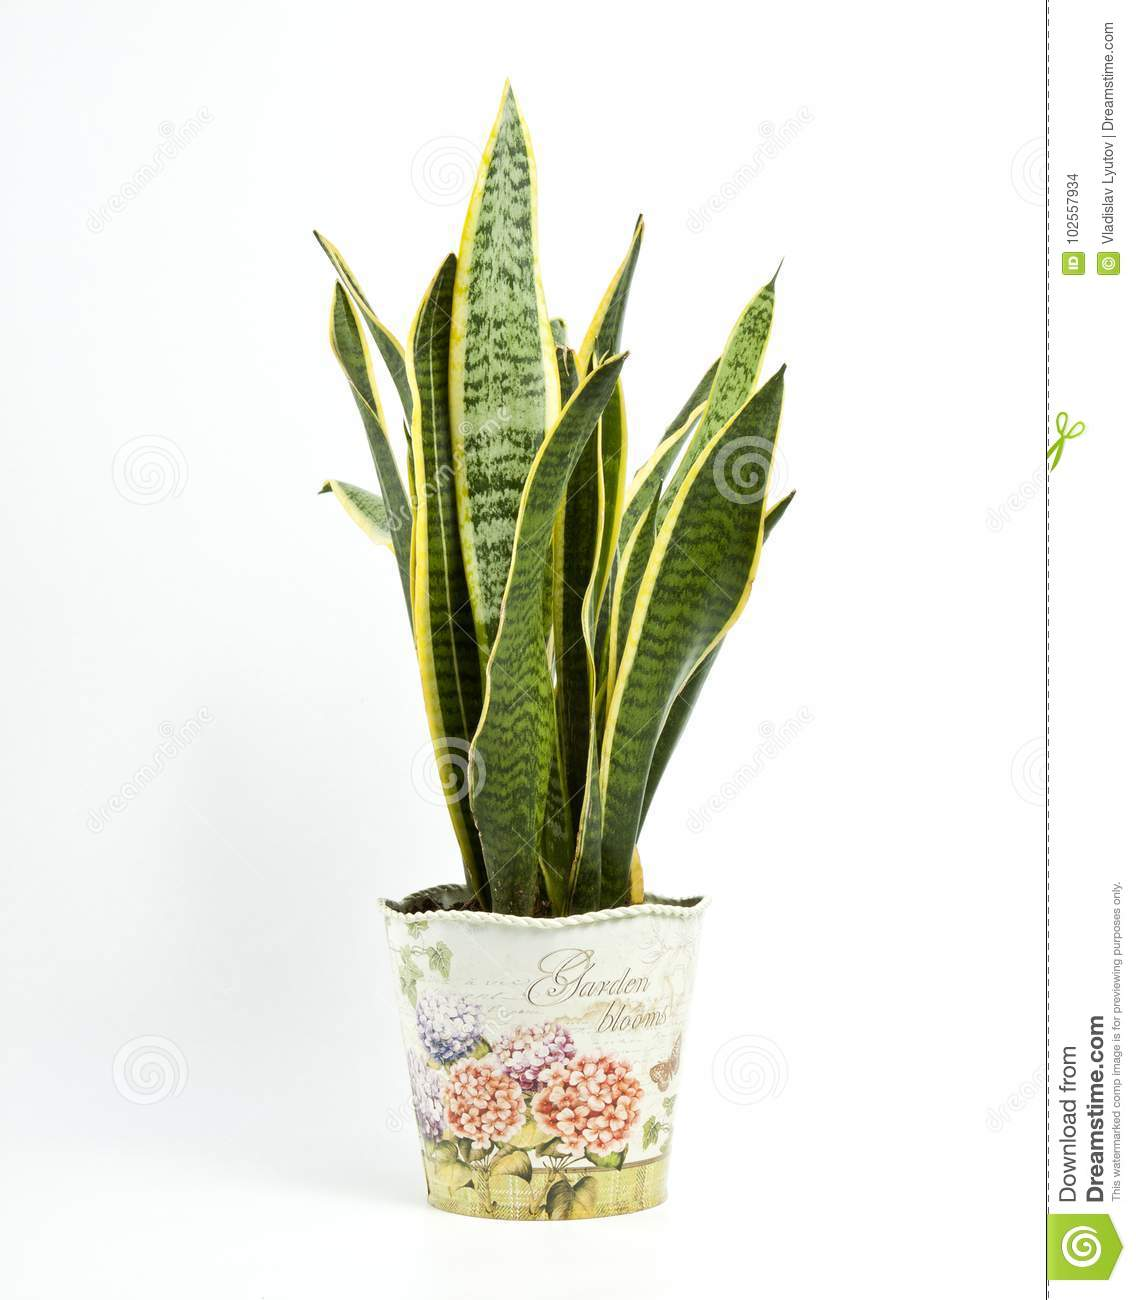 Sansevieria trifasciata or Snake plant in pot on a white background  sc 1 st  Dreamstime.com & Sansevieria Trifasciata Or Snake Plant In Pot On A White Background ...